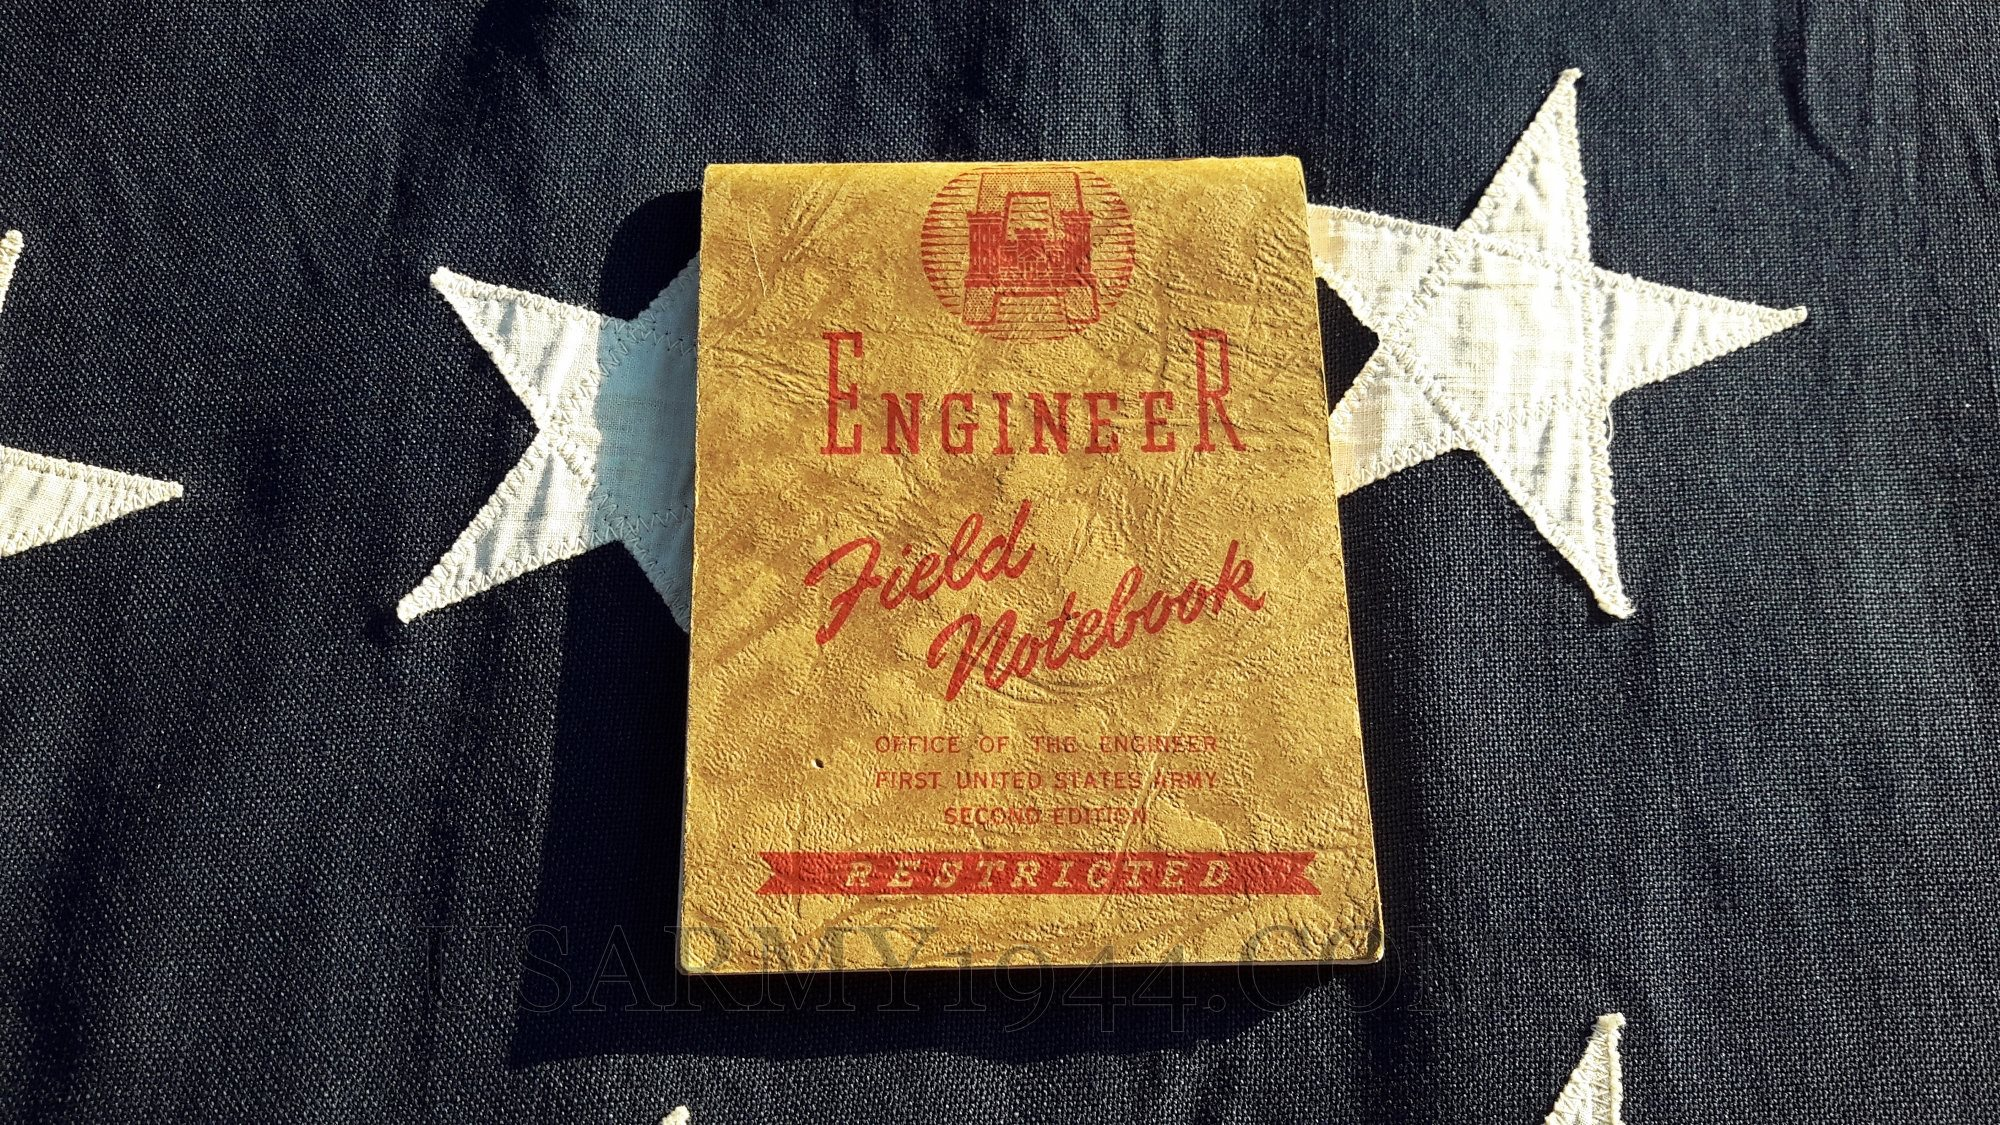 Engineer Field notebook